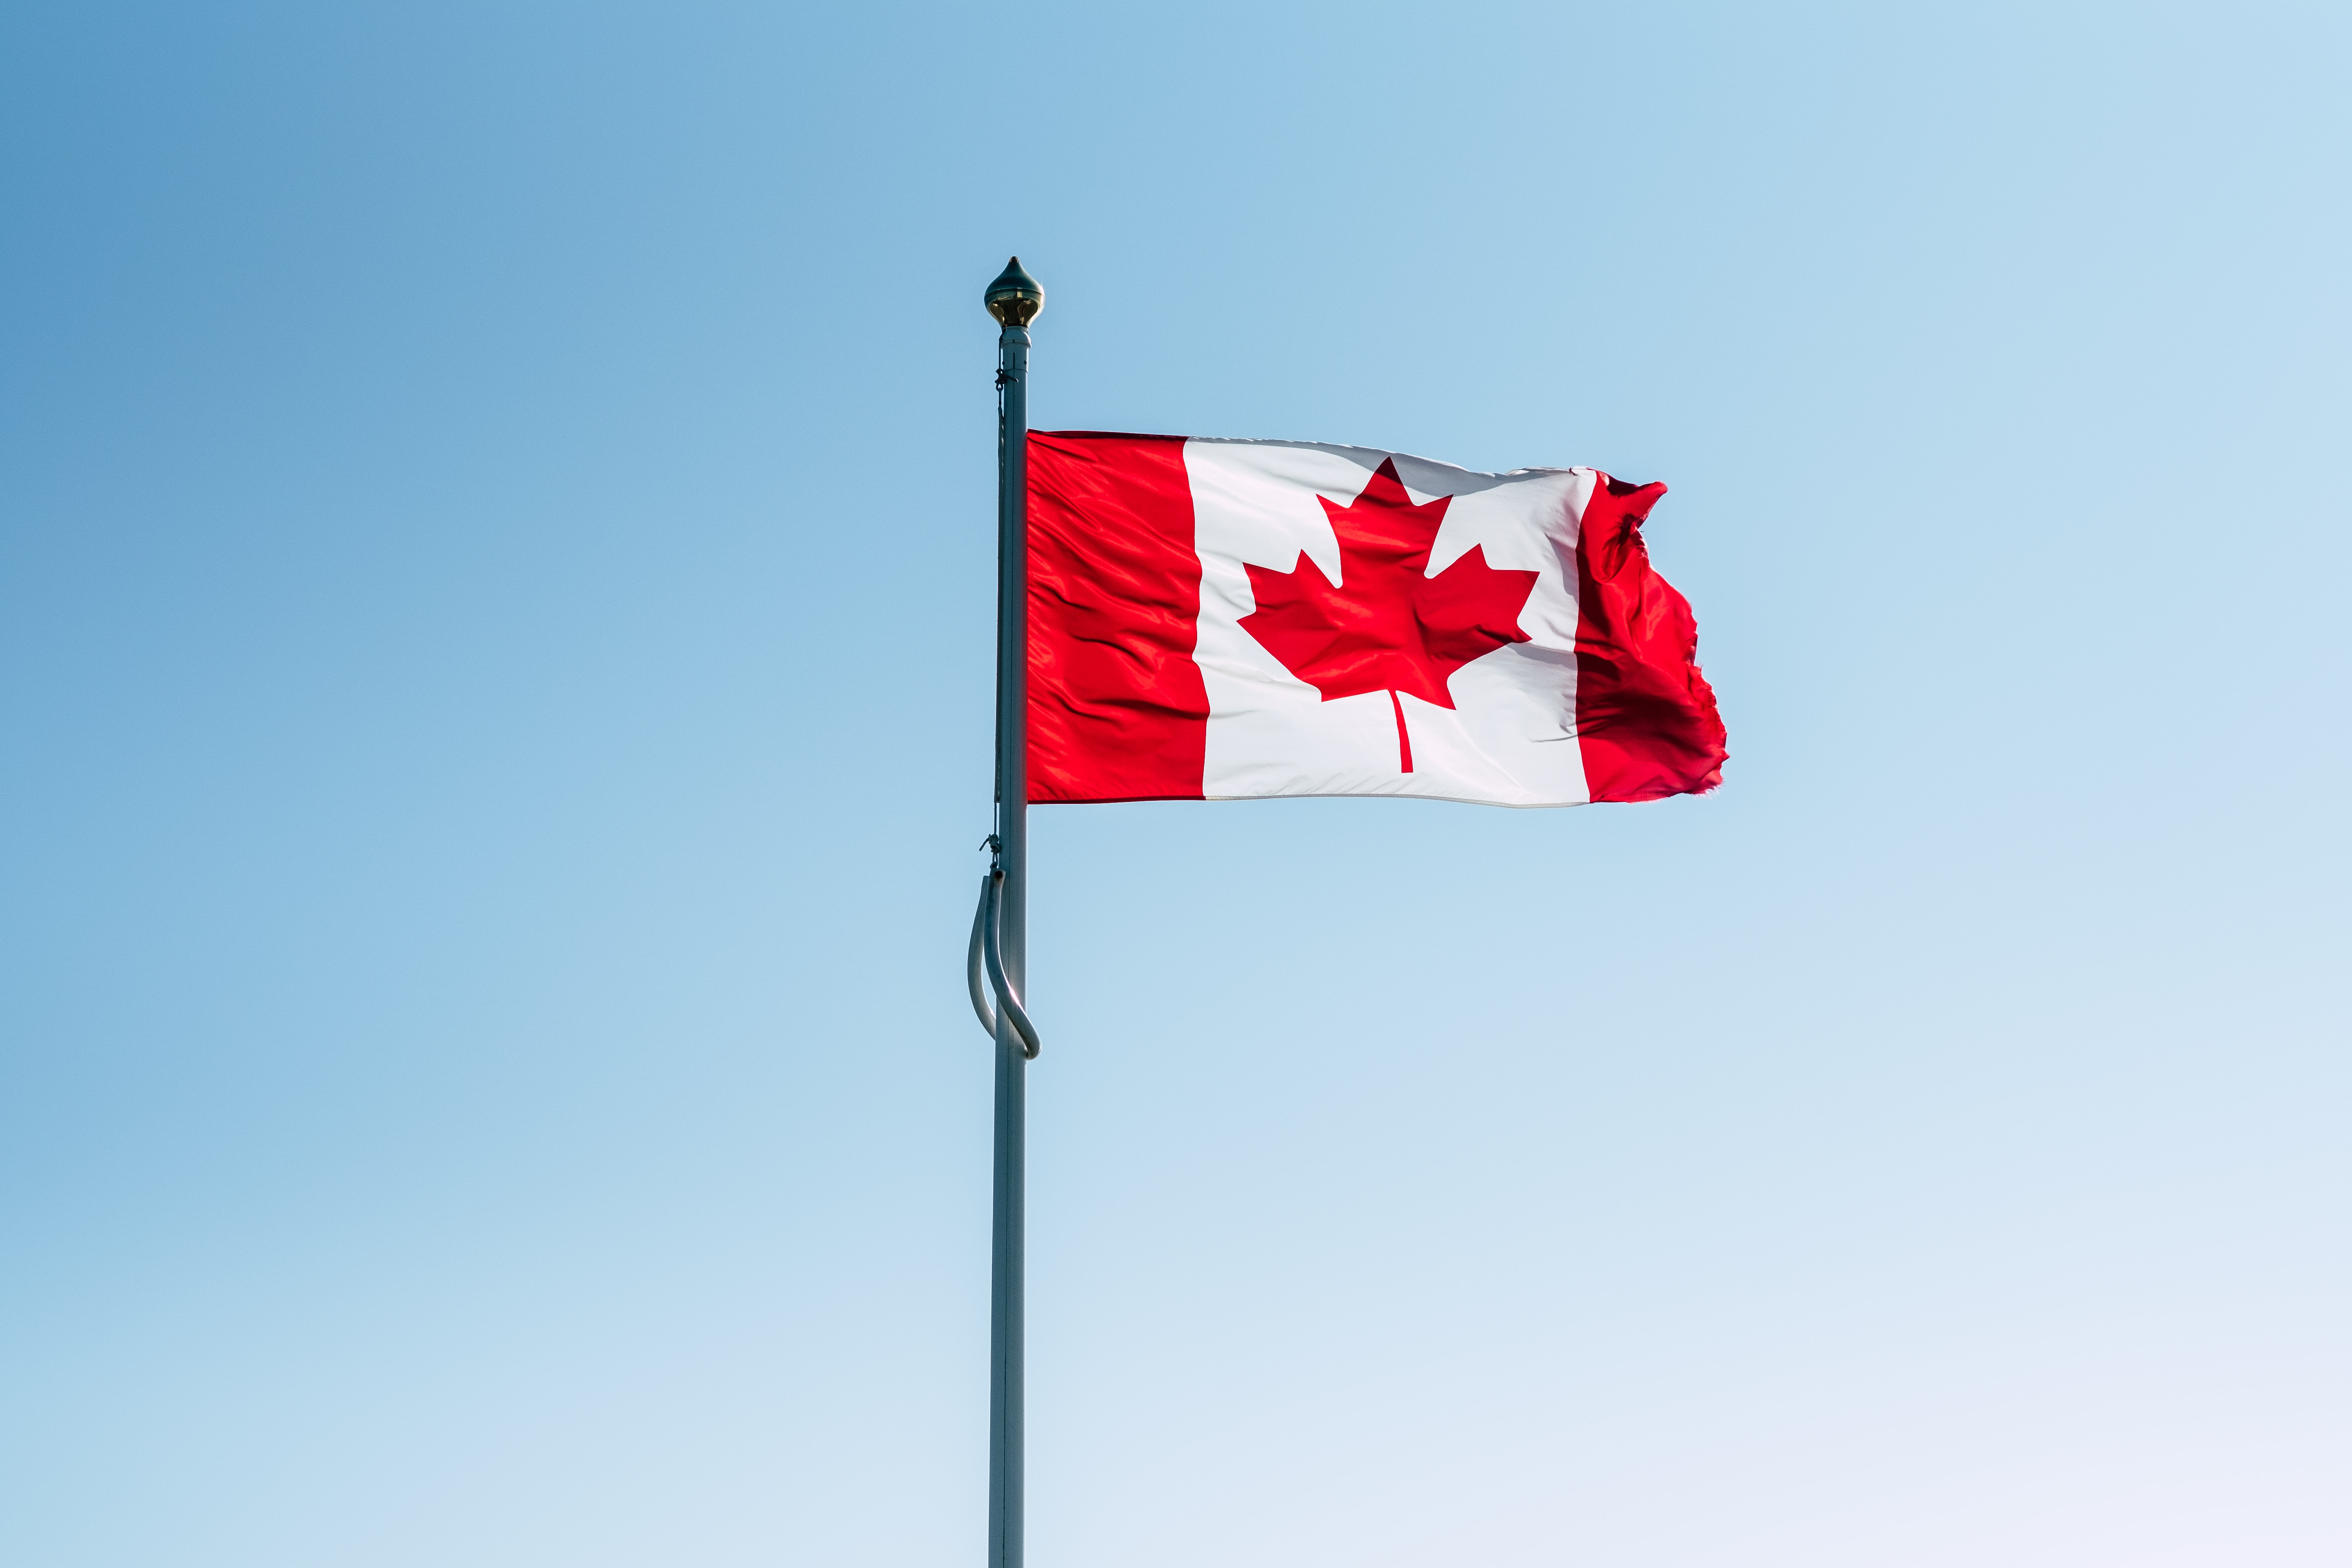 Canada flag on pole during daytime